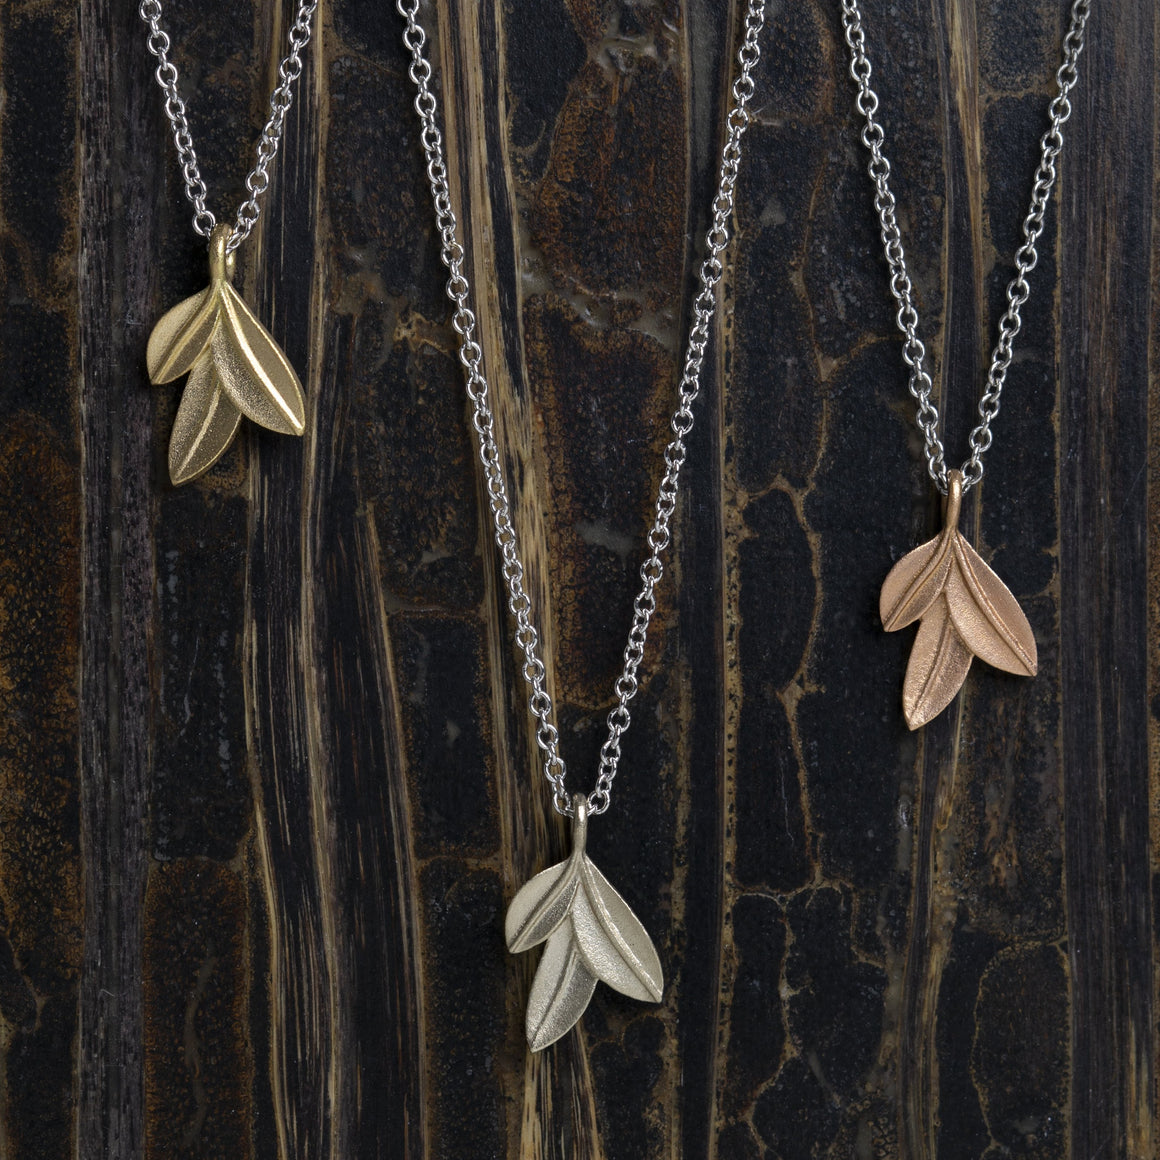 Botanica Leaf Pendant in White Gold